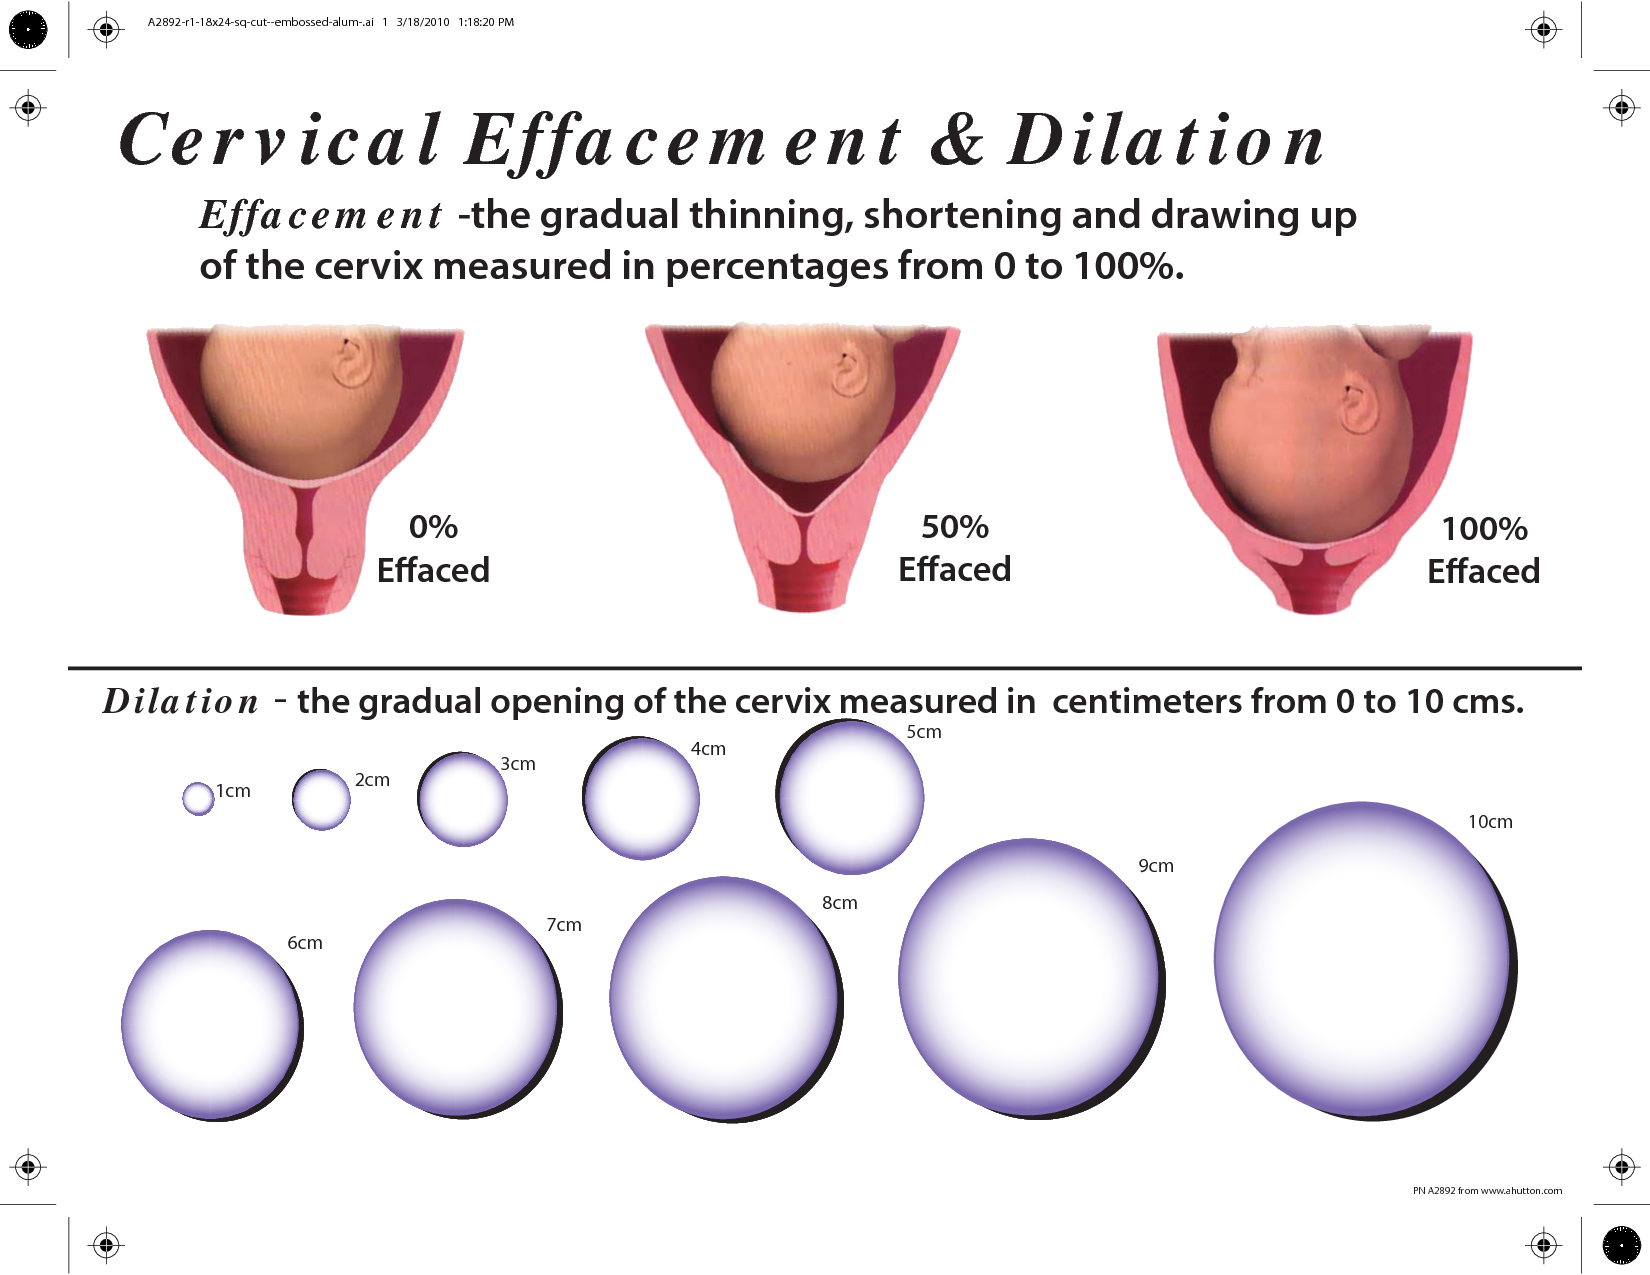 Cervical dilation cervical effacement dilation labor delivery